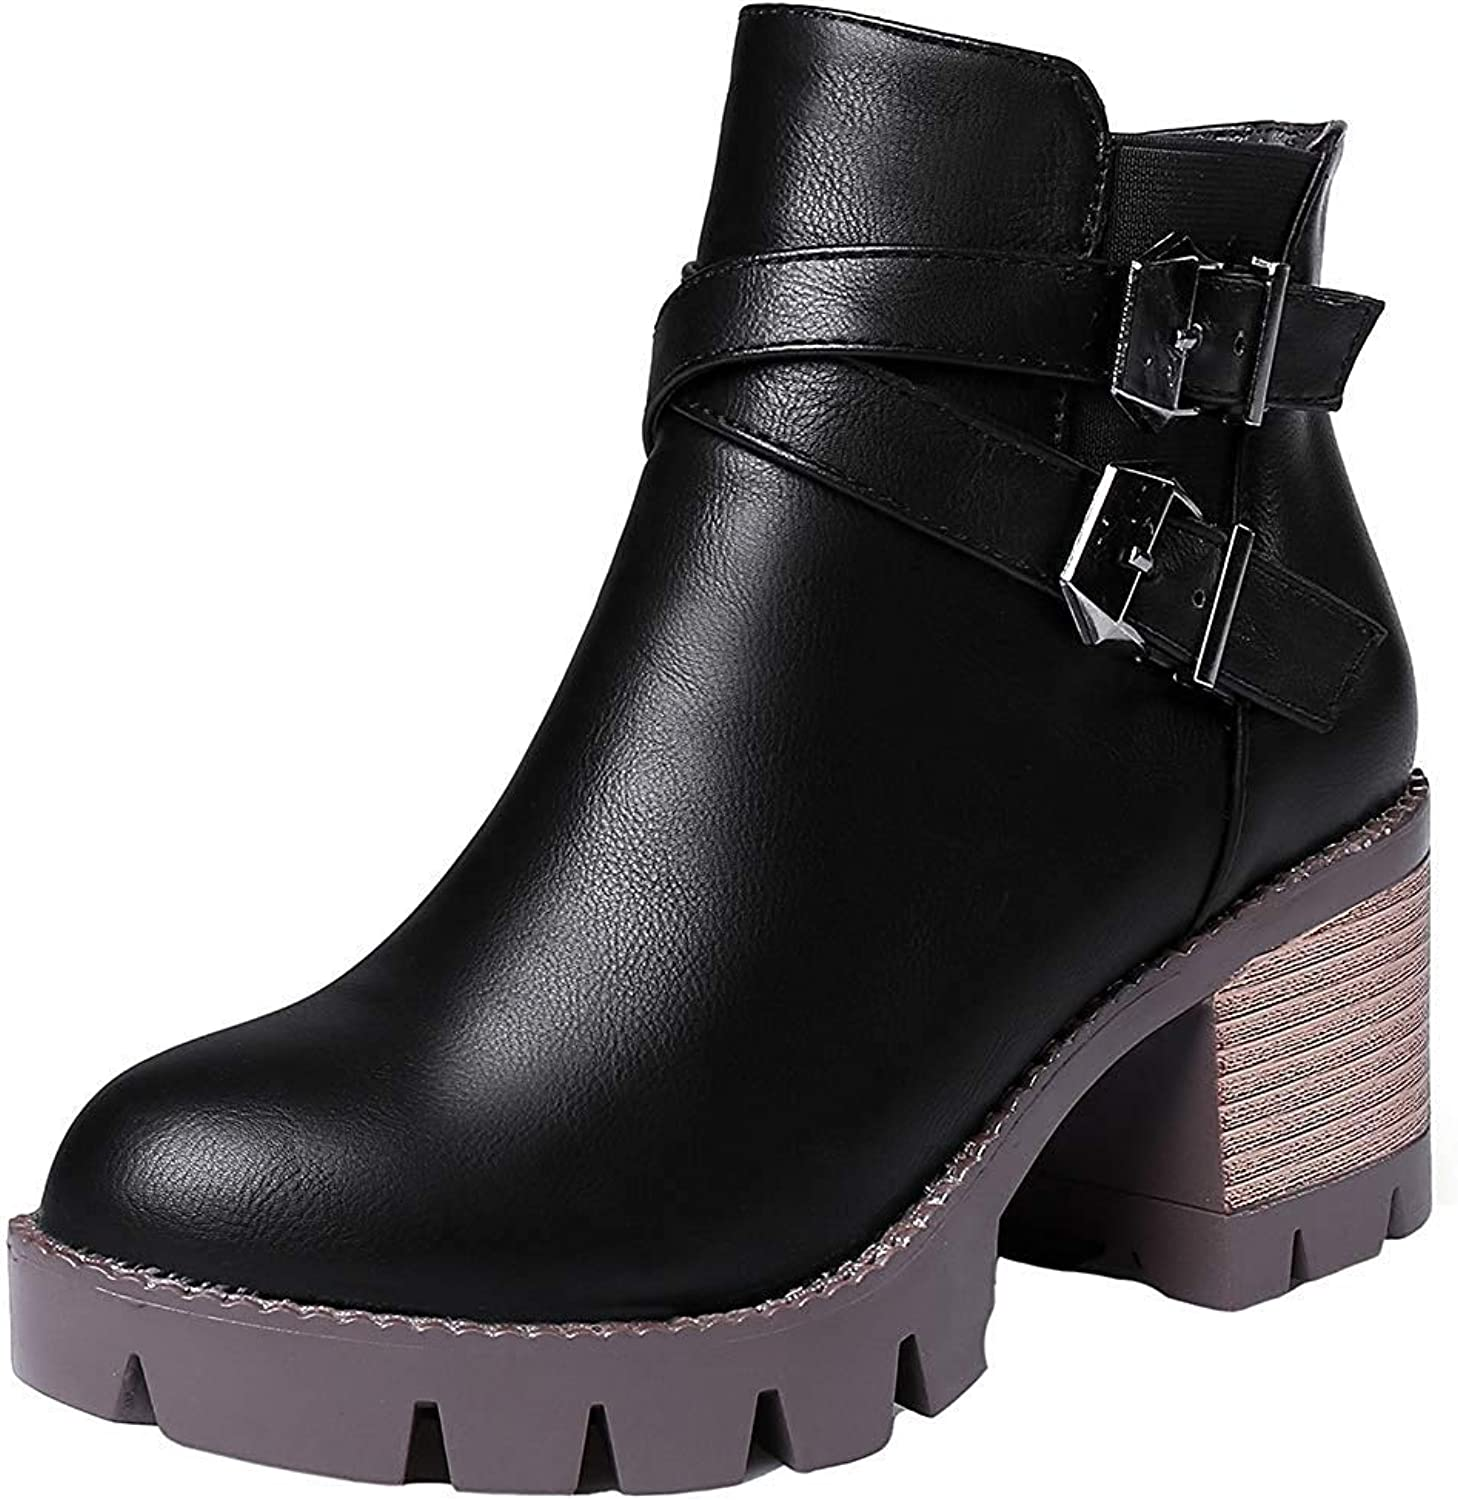 Lelehwhge Women's Trendy Buckle Zipper Round Toe Ankle High Mid Chunky Heel Short Boots Brown 8 M US